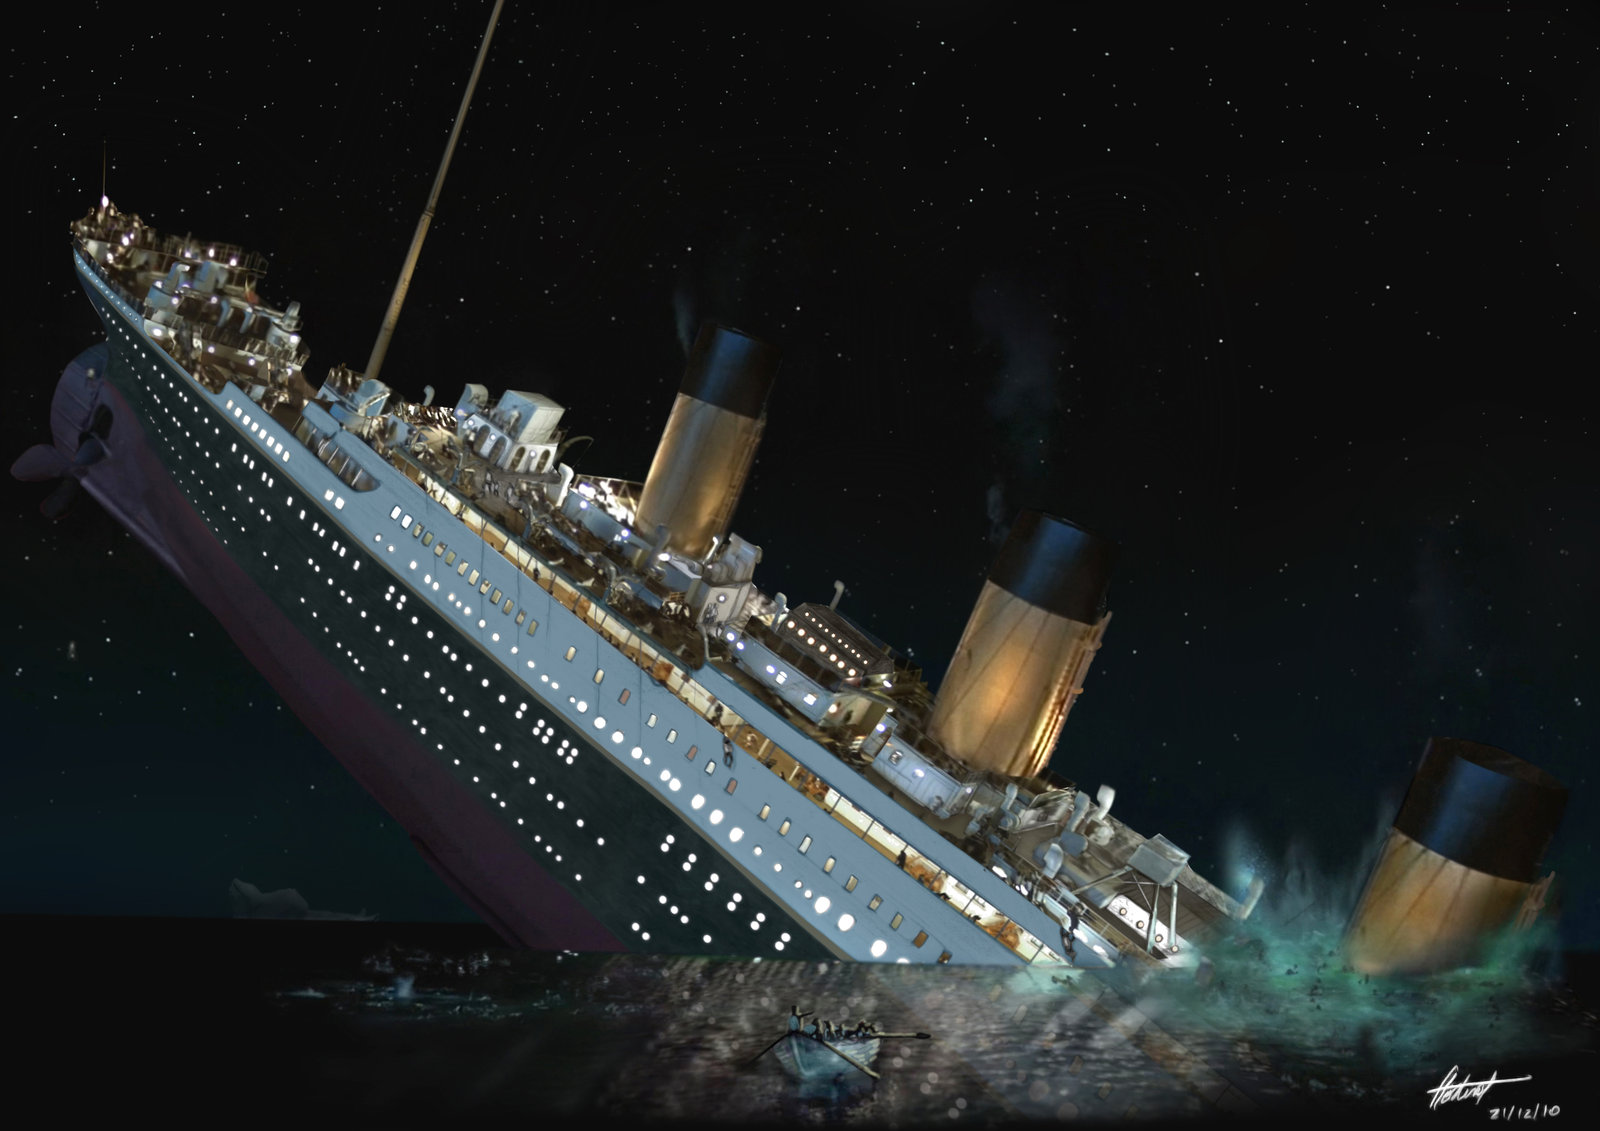 The Sinking Of The Titanic: Another Rothschild-Rockefeller-Morgan Conspiracy?